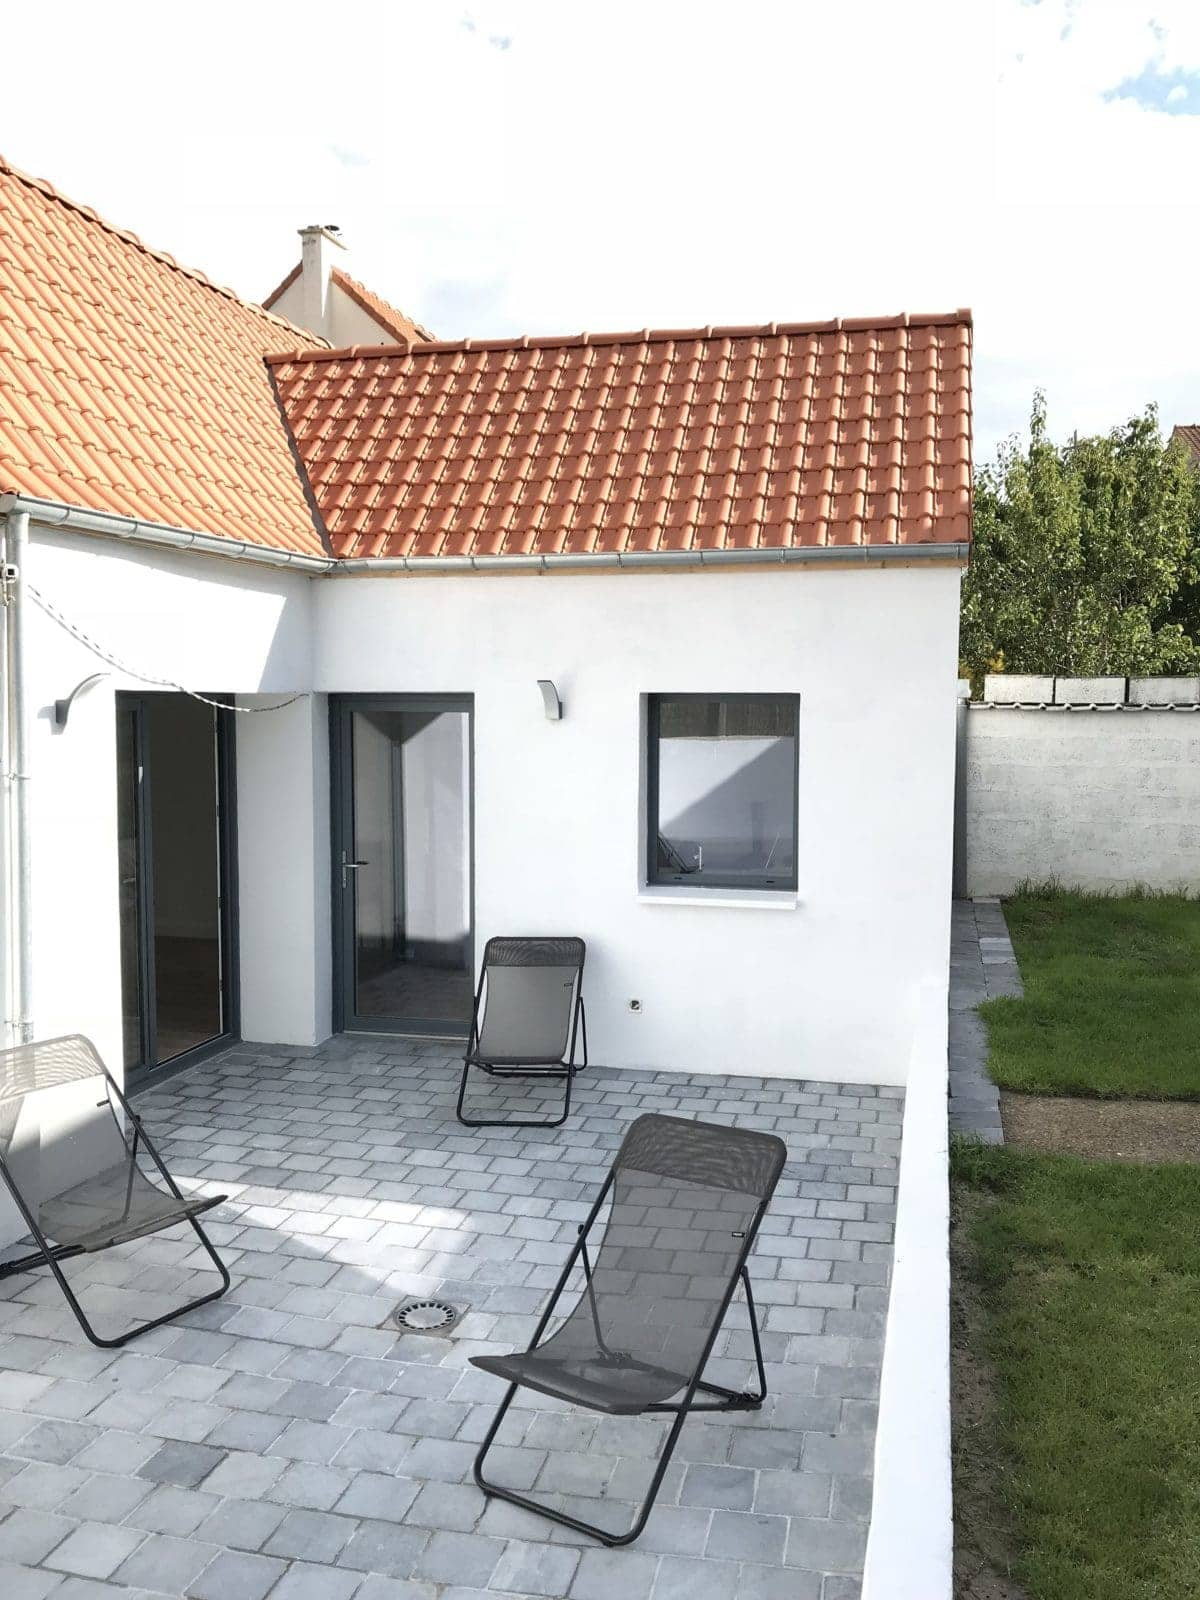 wissant-renovation-extension-travaux-avec-amenagement-terrasse